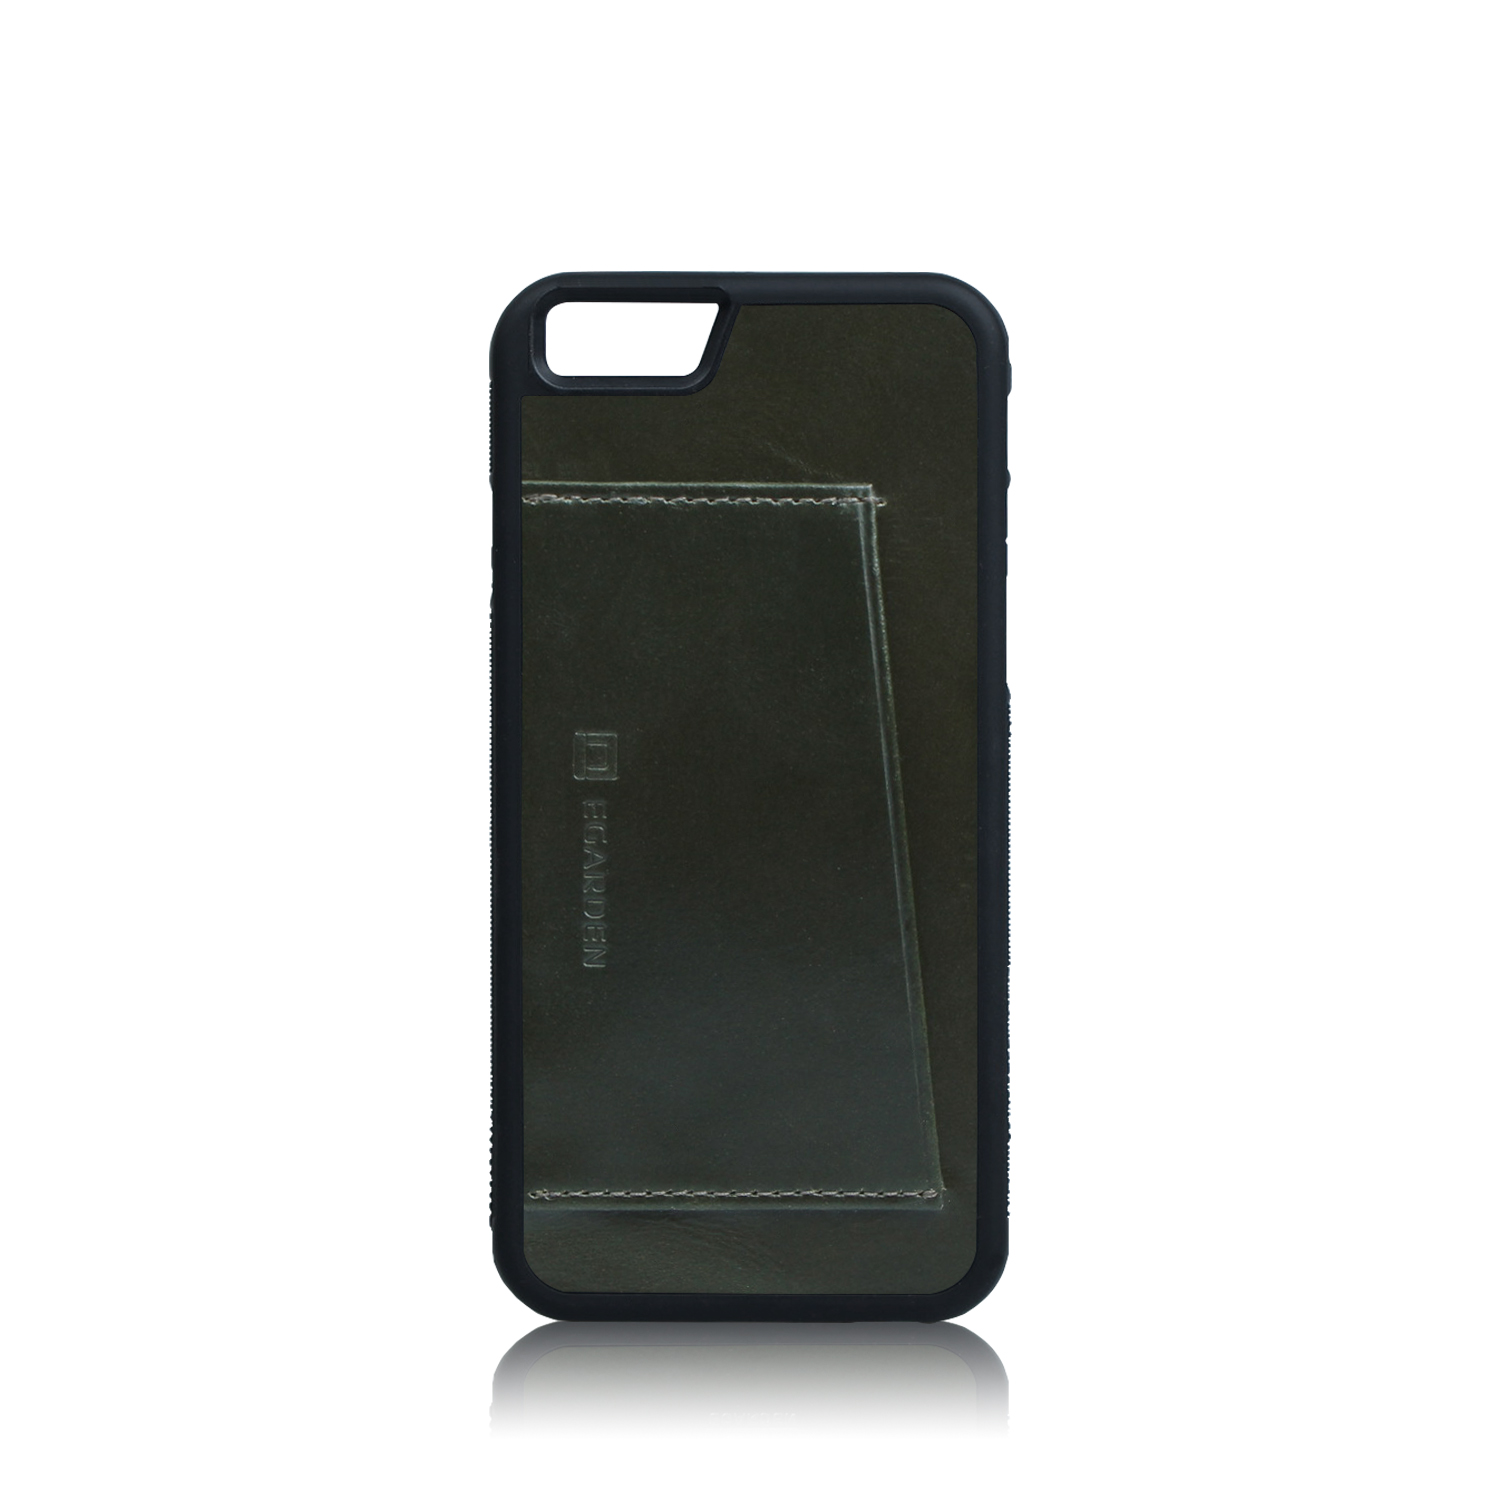 iPhone6S/6S+ Back Cover Case- 1 Card_Olive